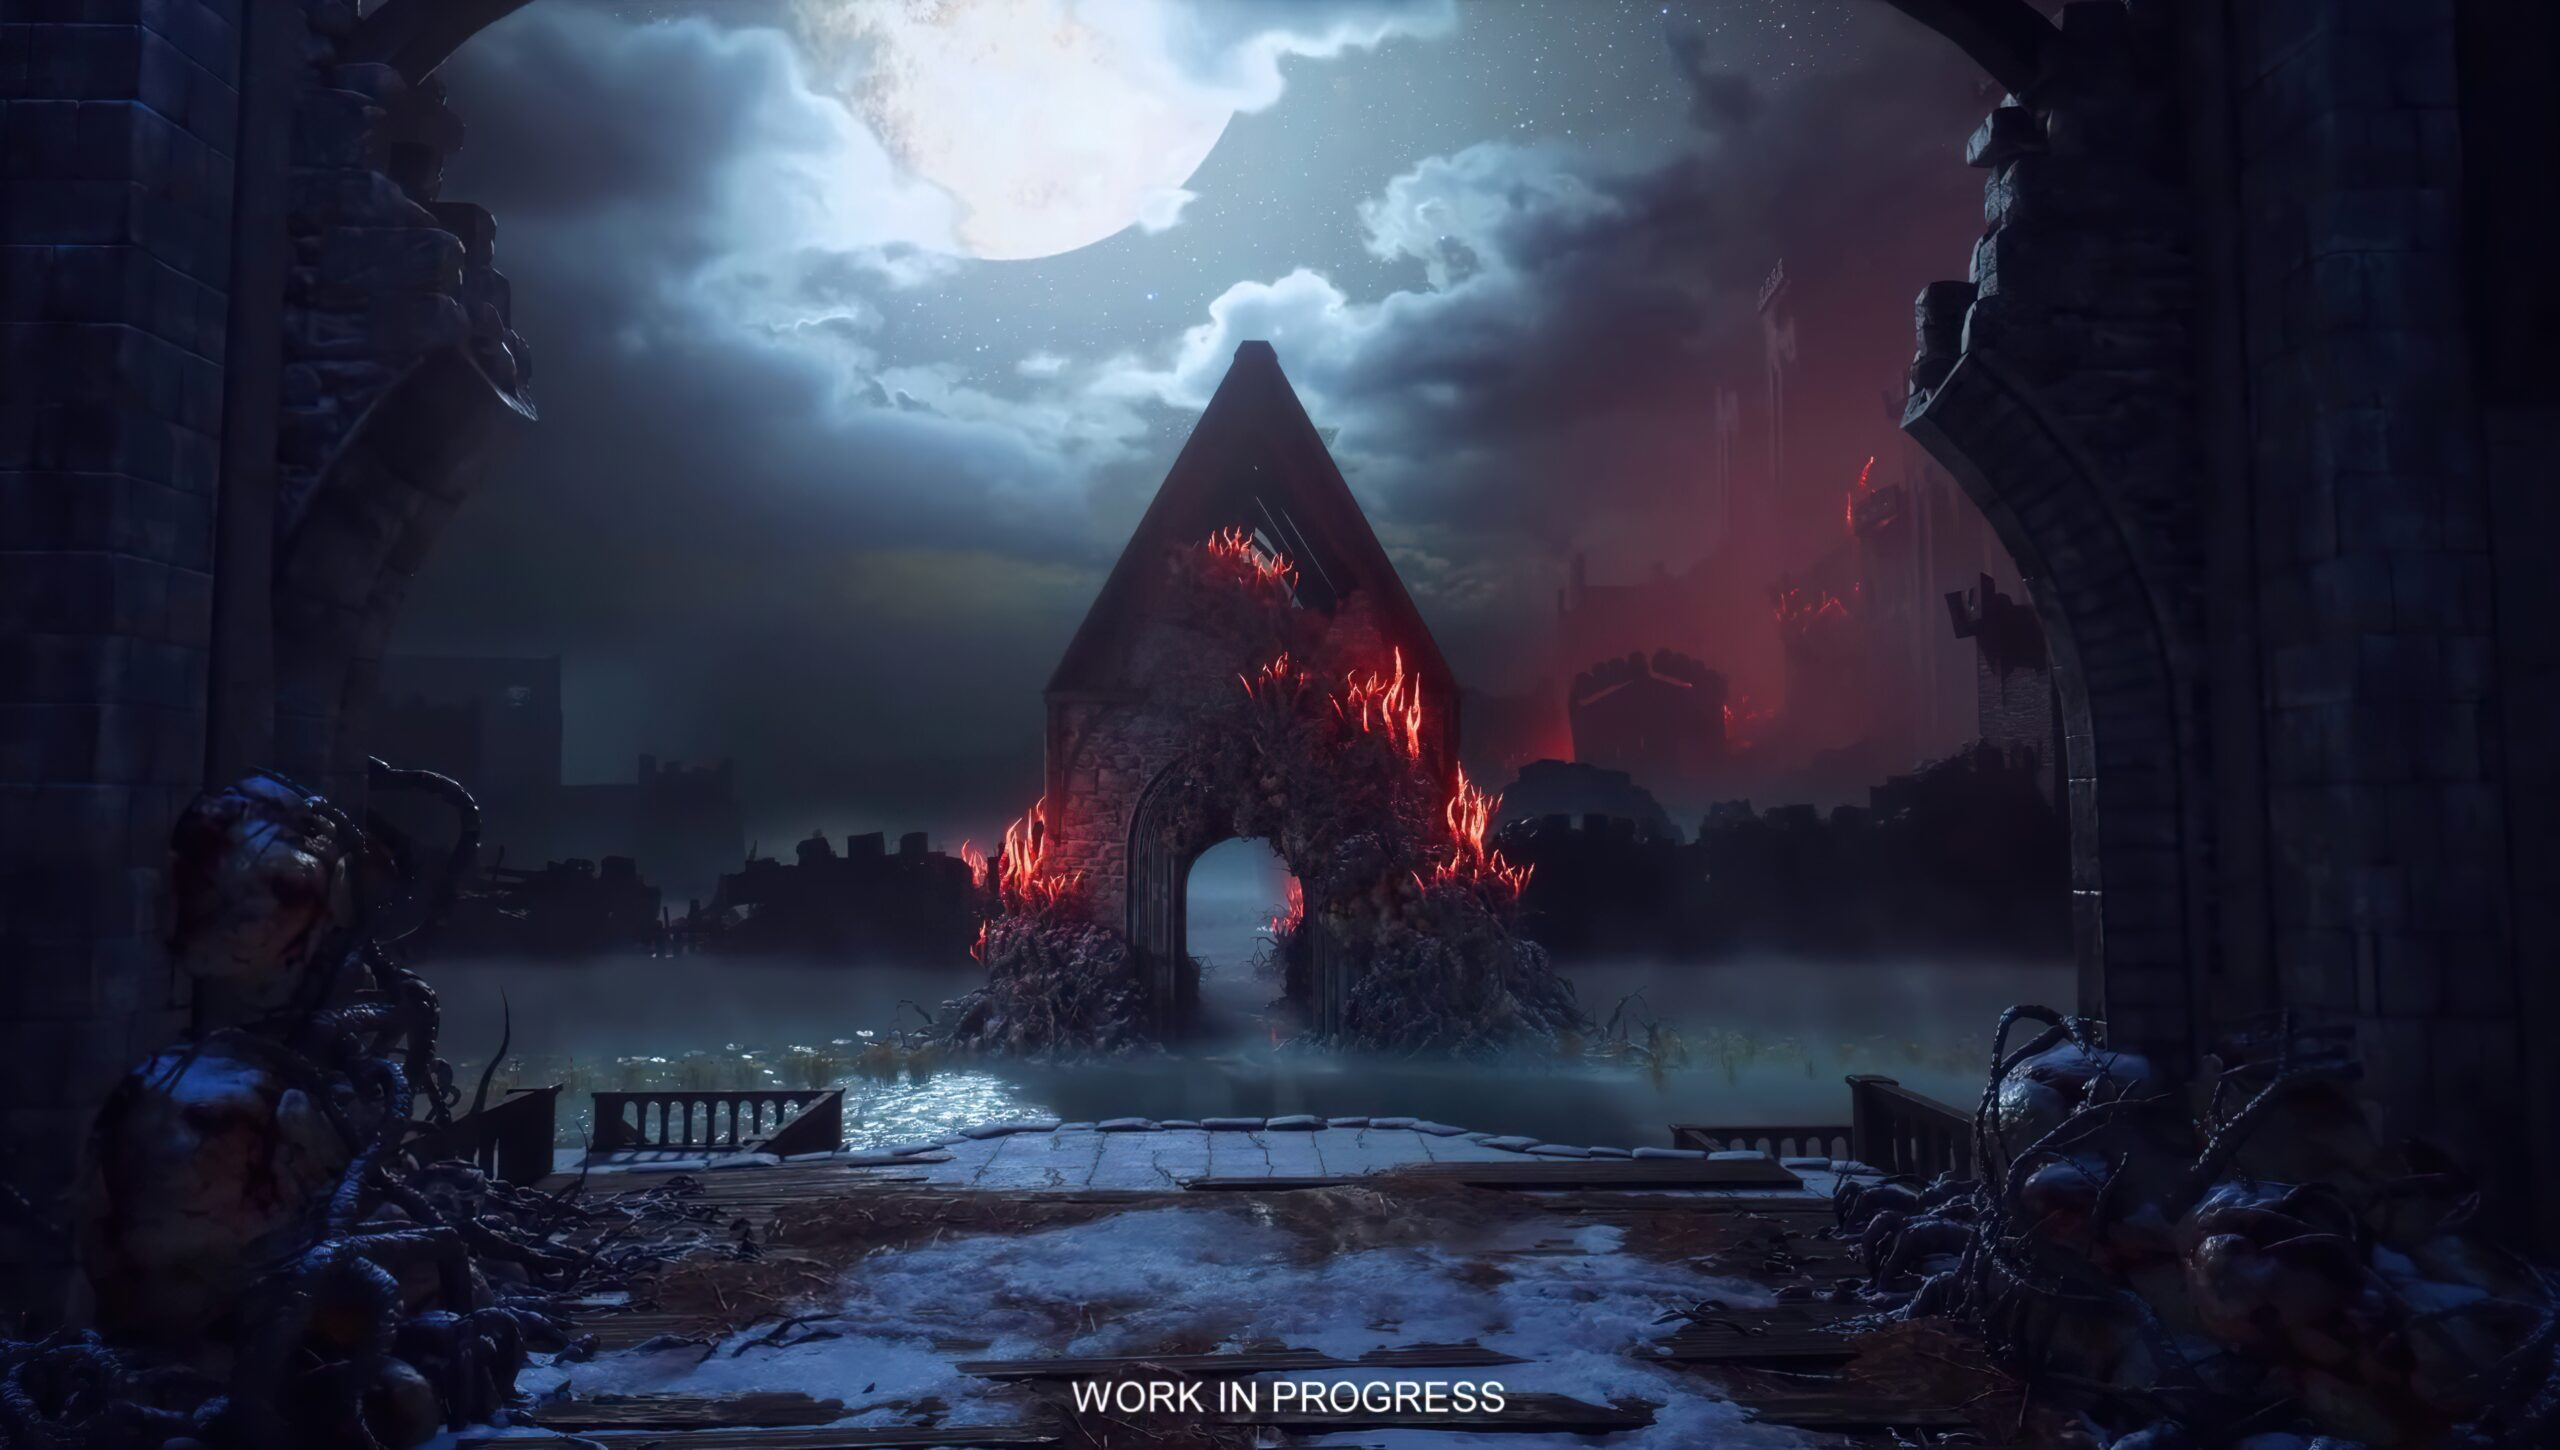 Dragon Age 4 Team Is Still Working On The Game From Home According To BioWare Executive Producer